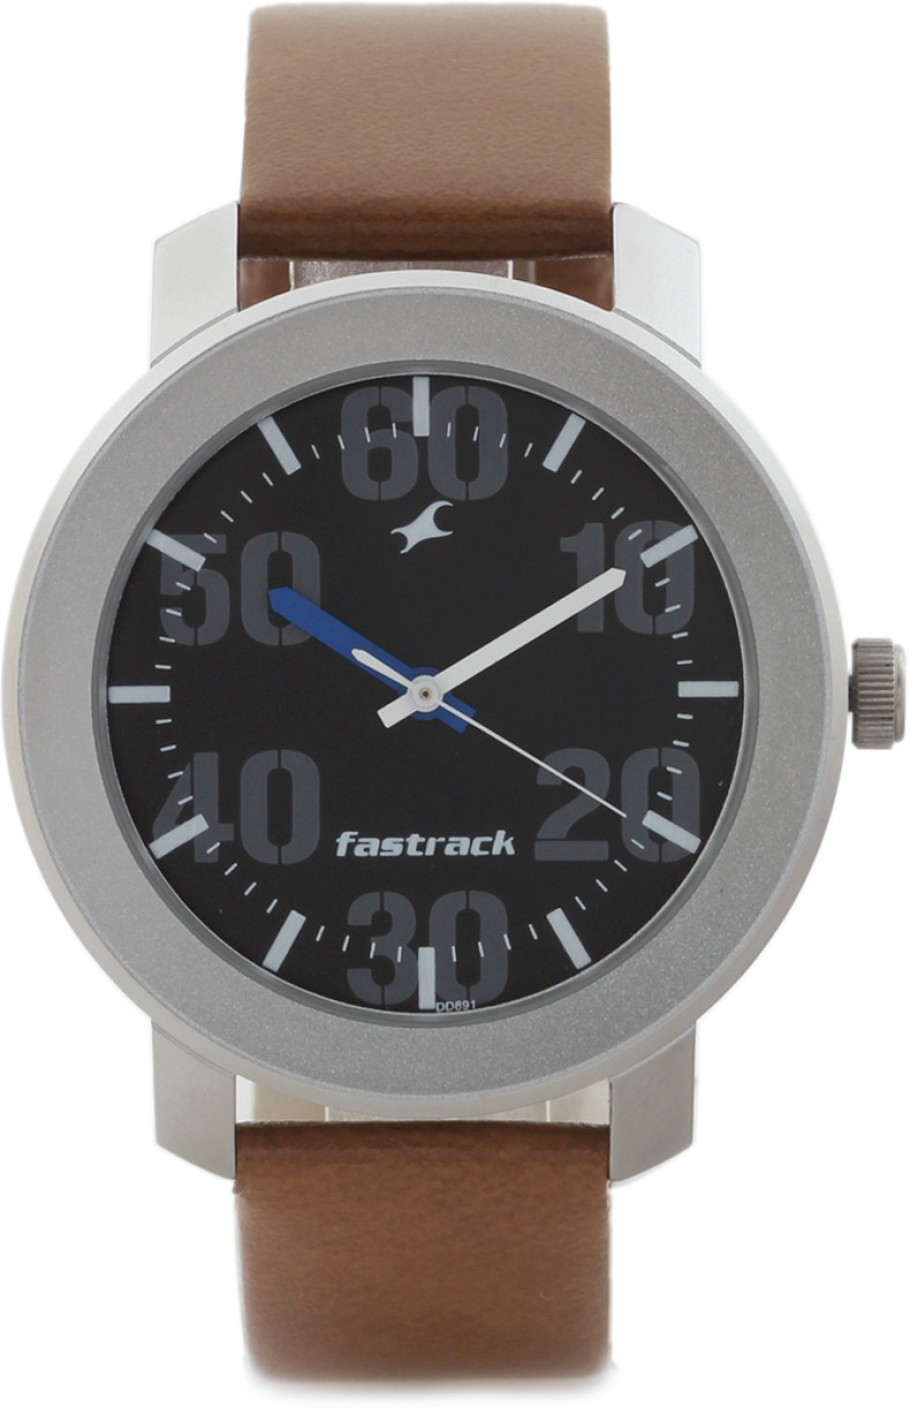 Fastrack Watches With Price